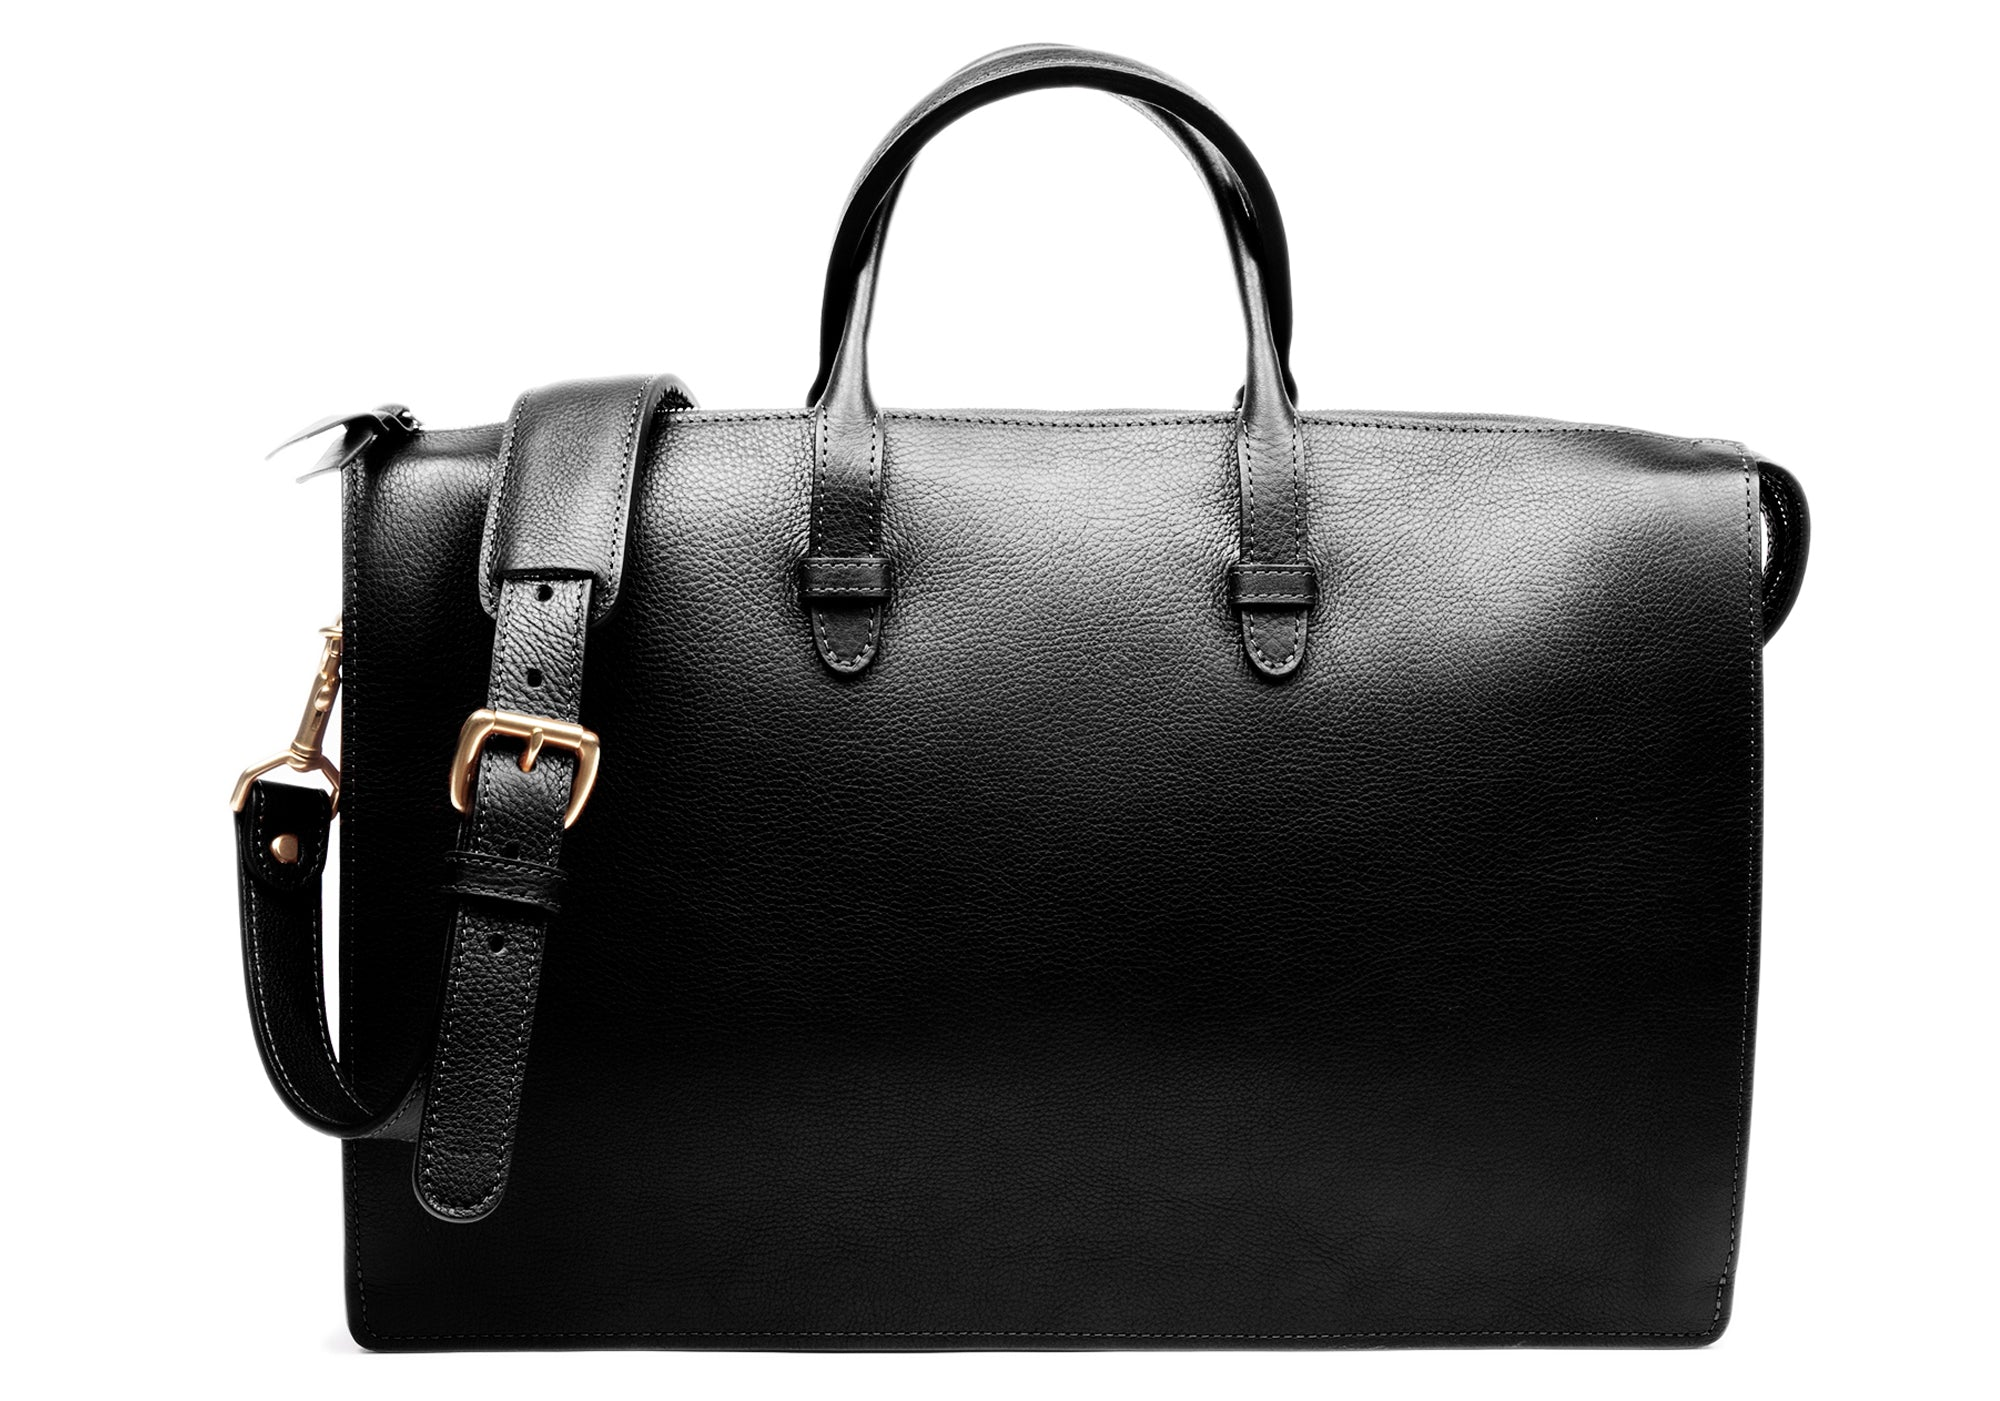 The Triumph Briefcase The Triumph Briefcase